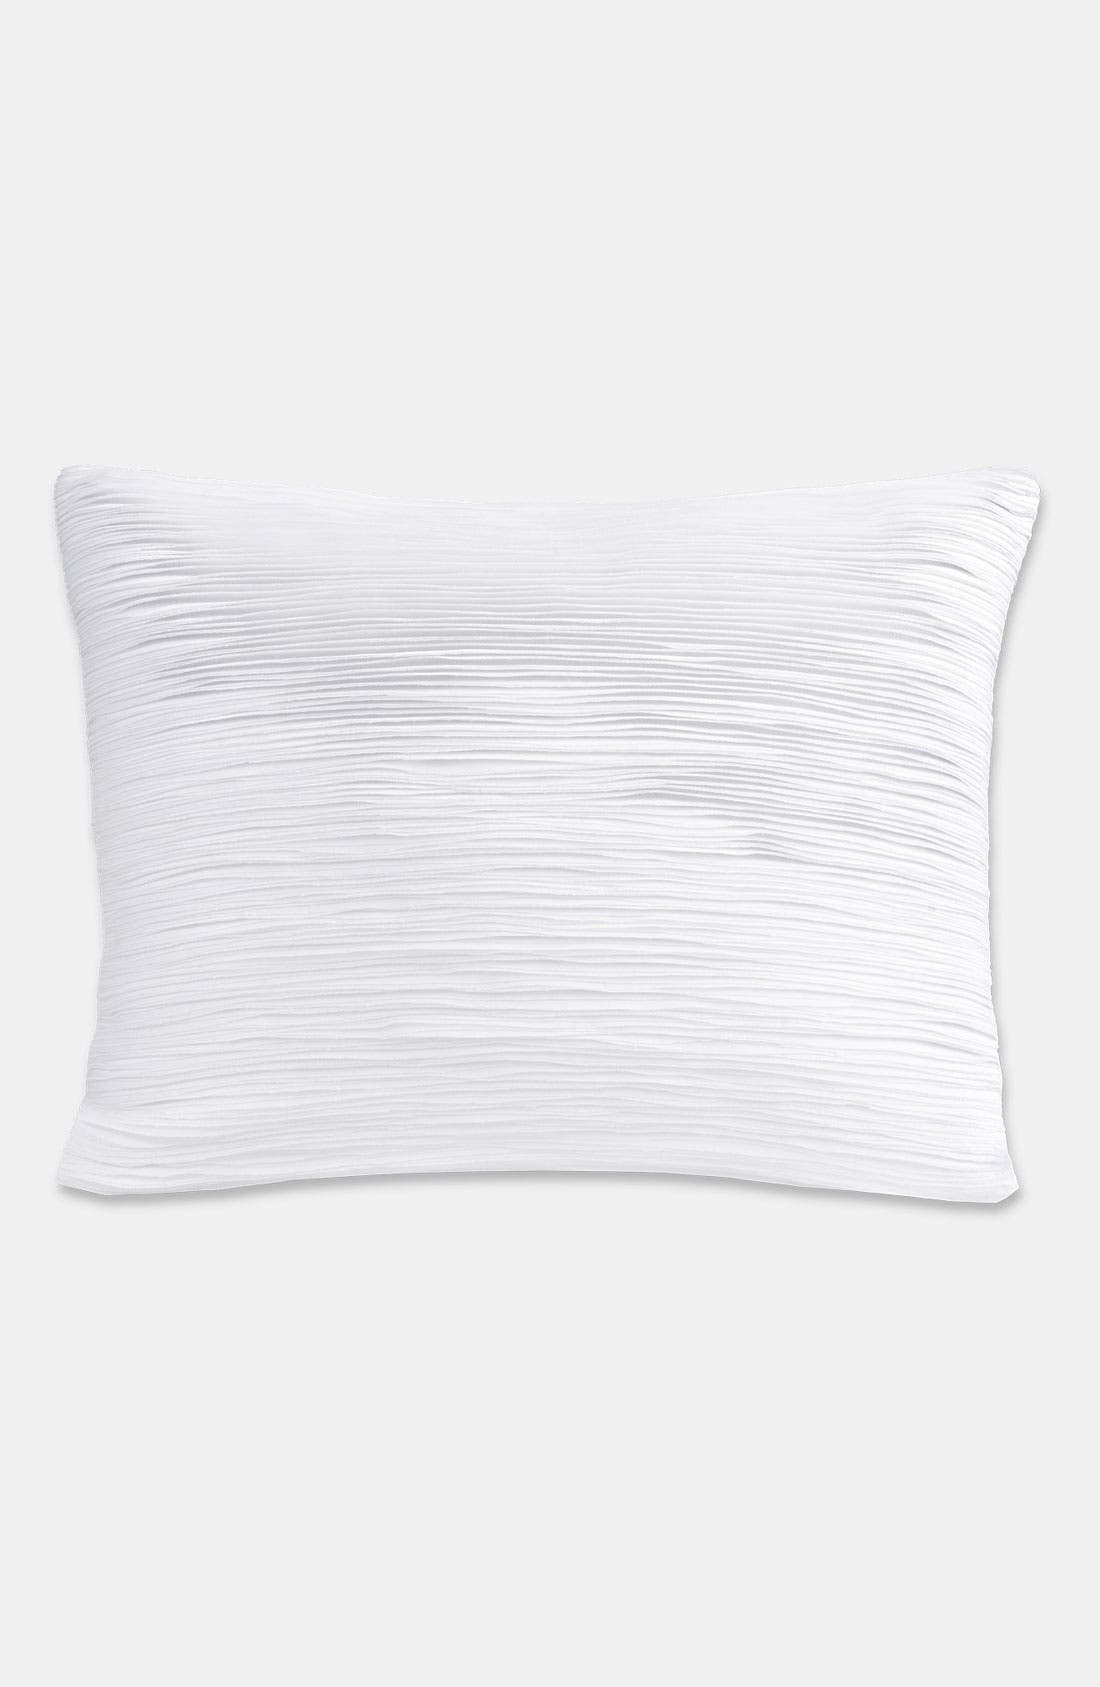 Main Image - Donna Karan 'Layered' Sateen Pillow